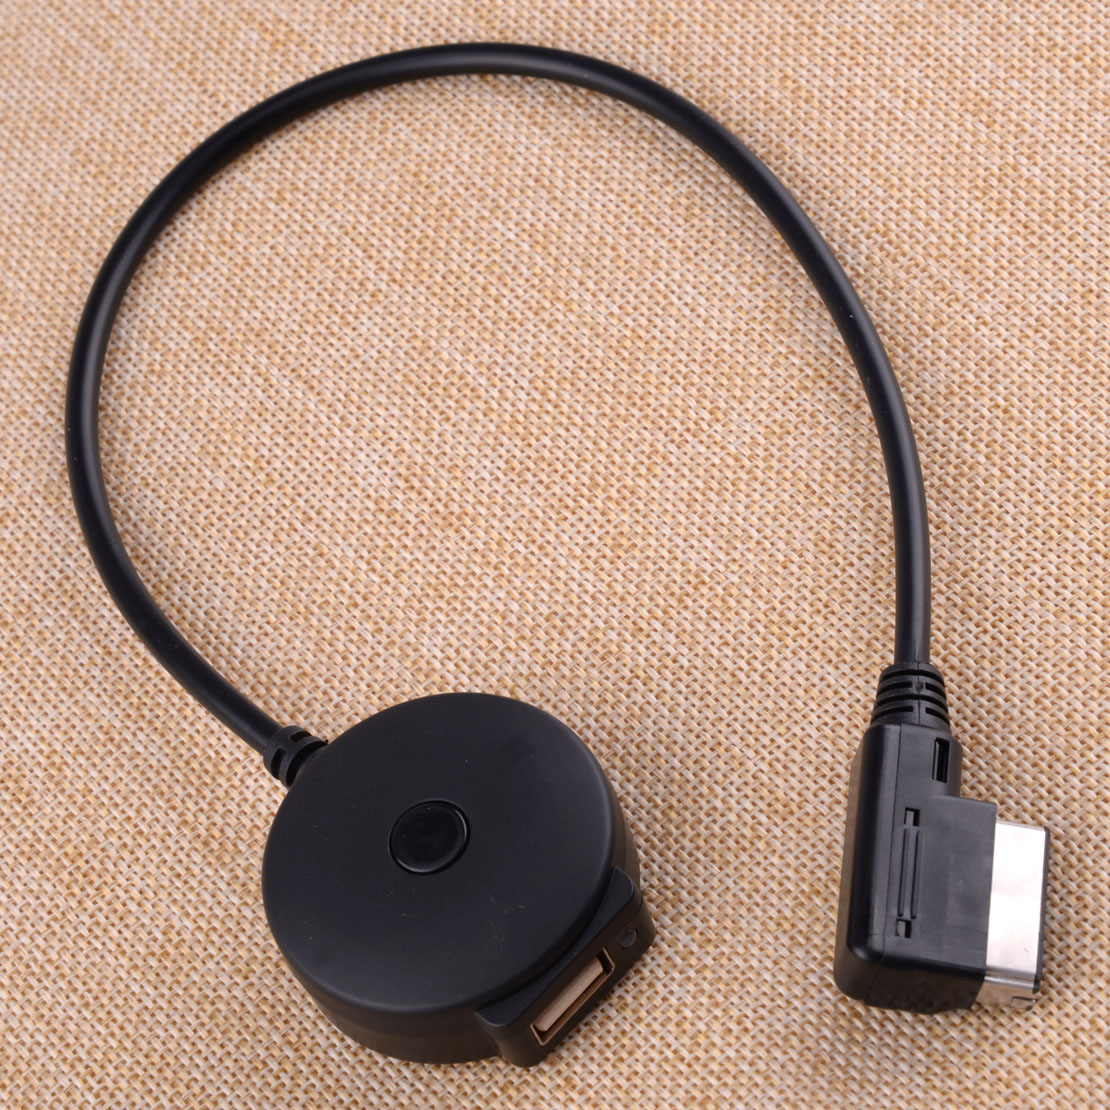 Music Adapter Wireless Bluetooth Interface Fit for Mercedes-Benz MMI AUX Cable